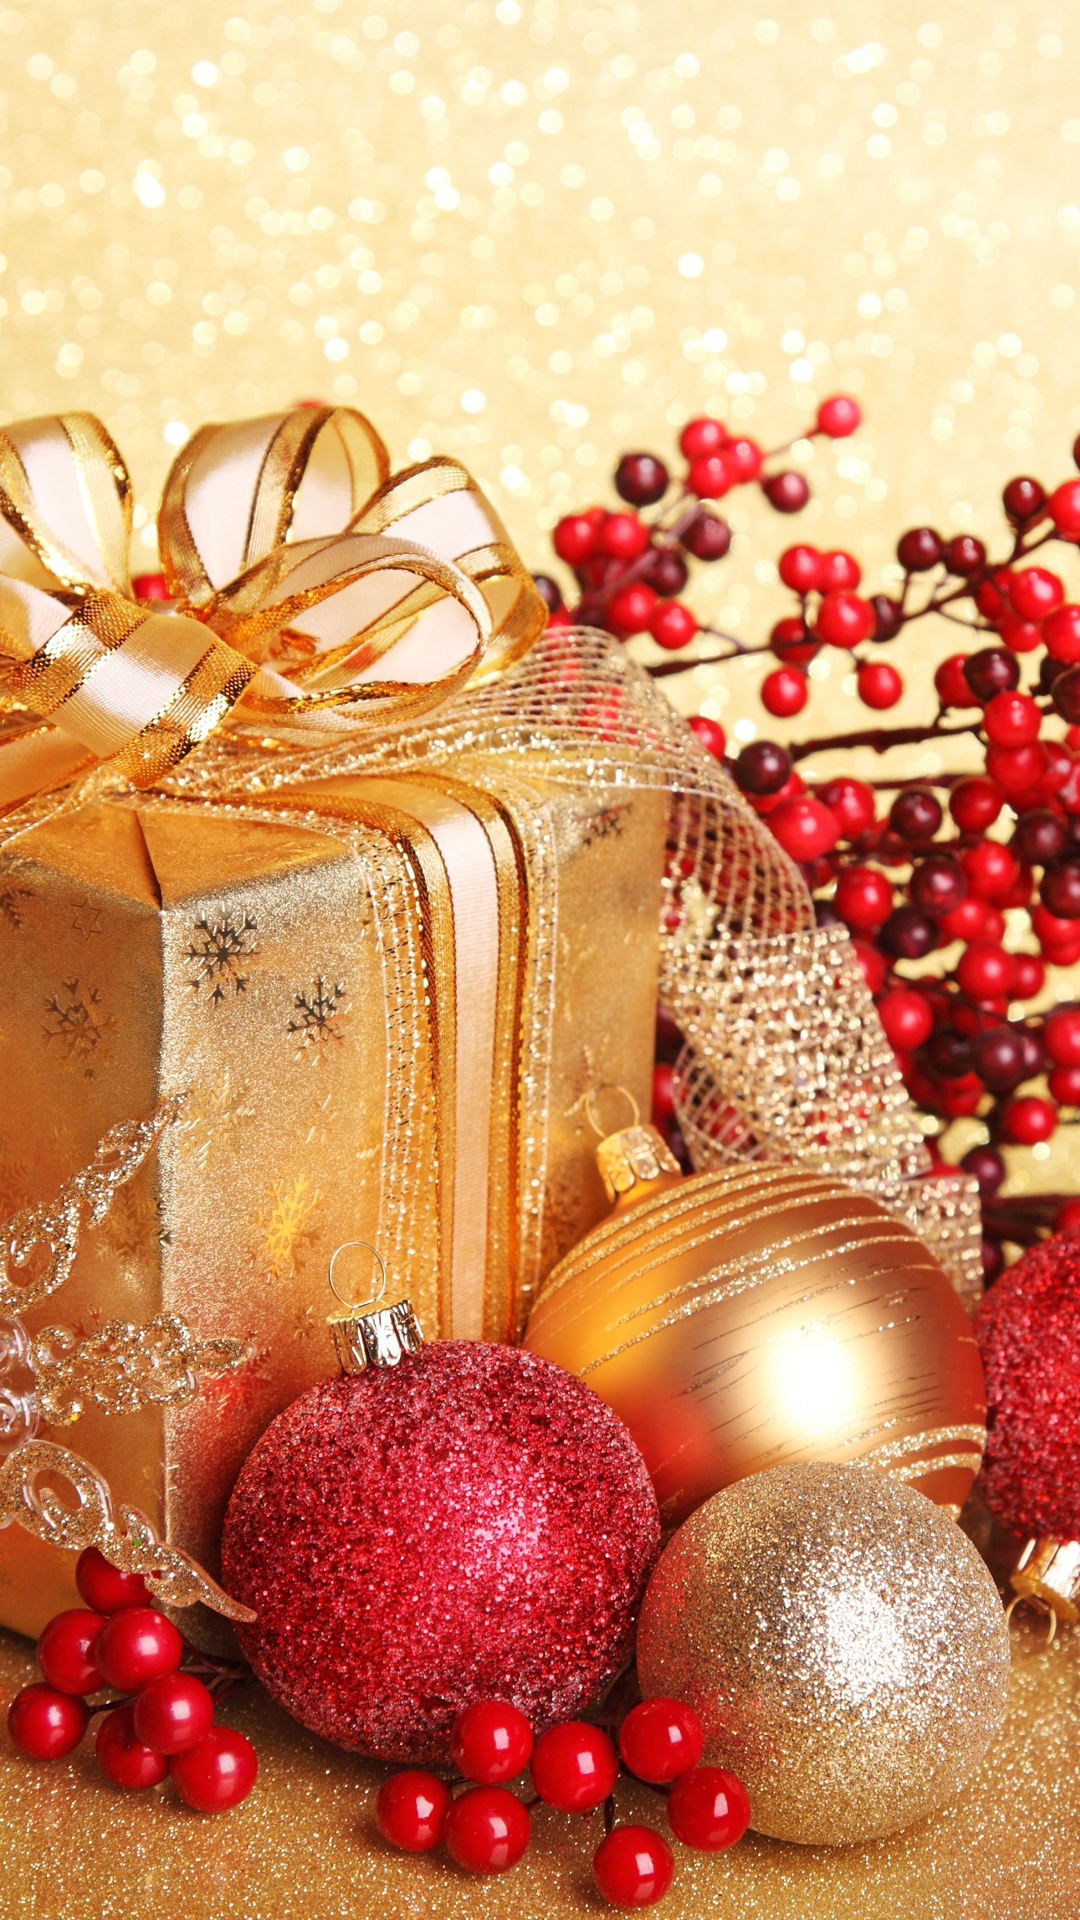 Christmas presents htc one wallpaper   Best htc one wallpapers 1080x1920